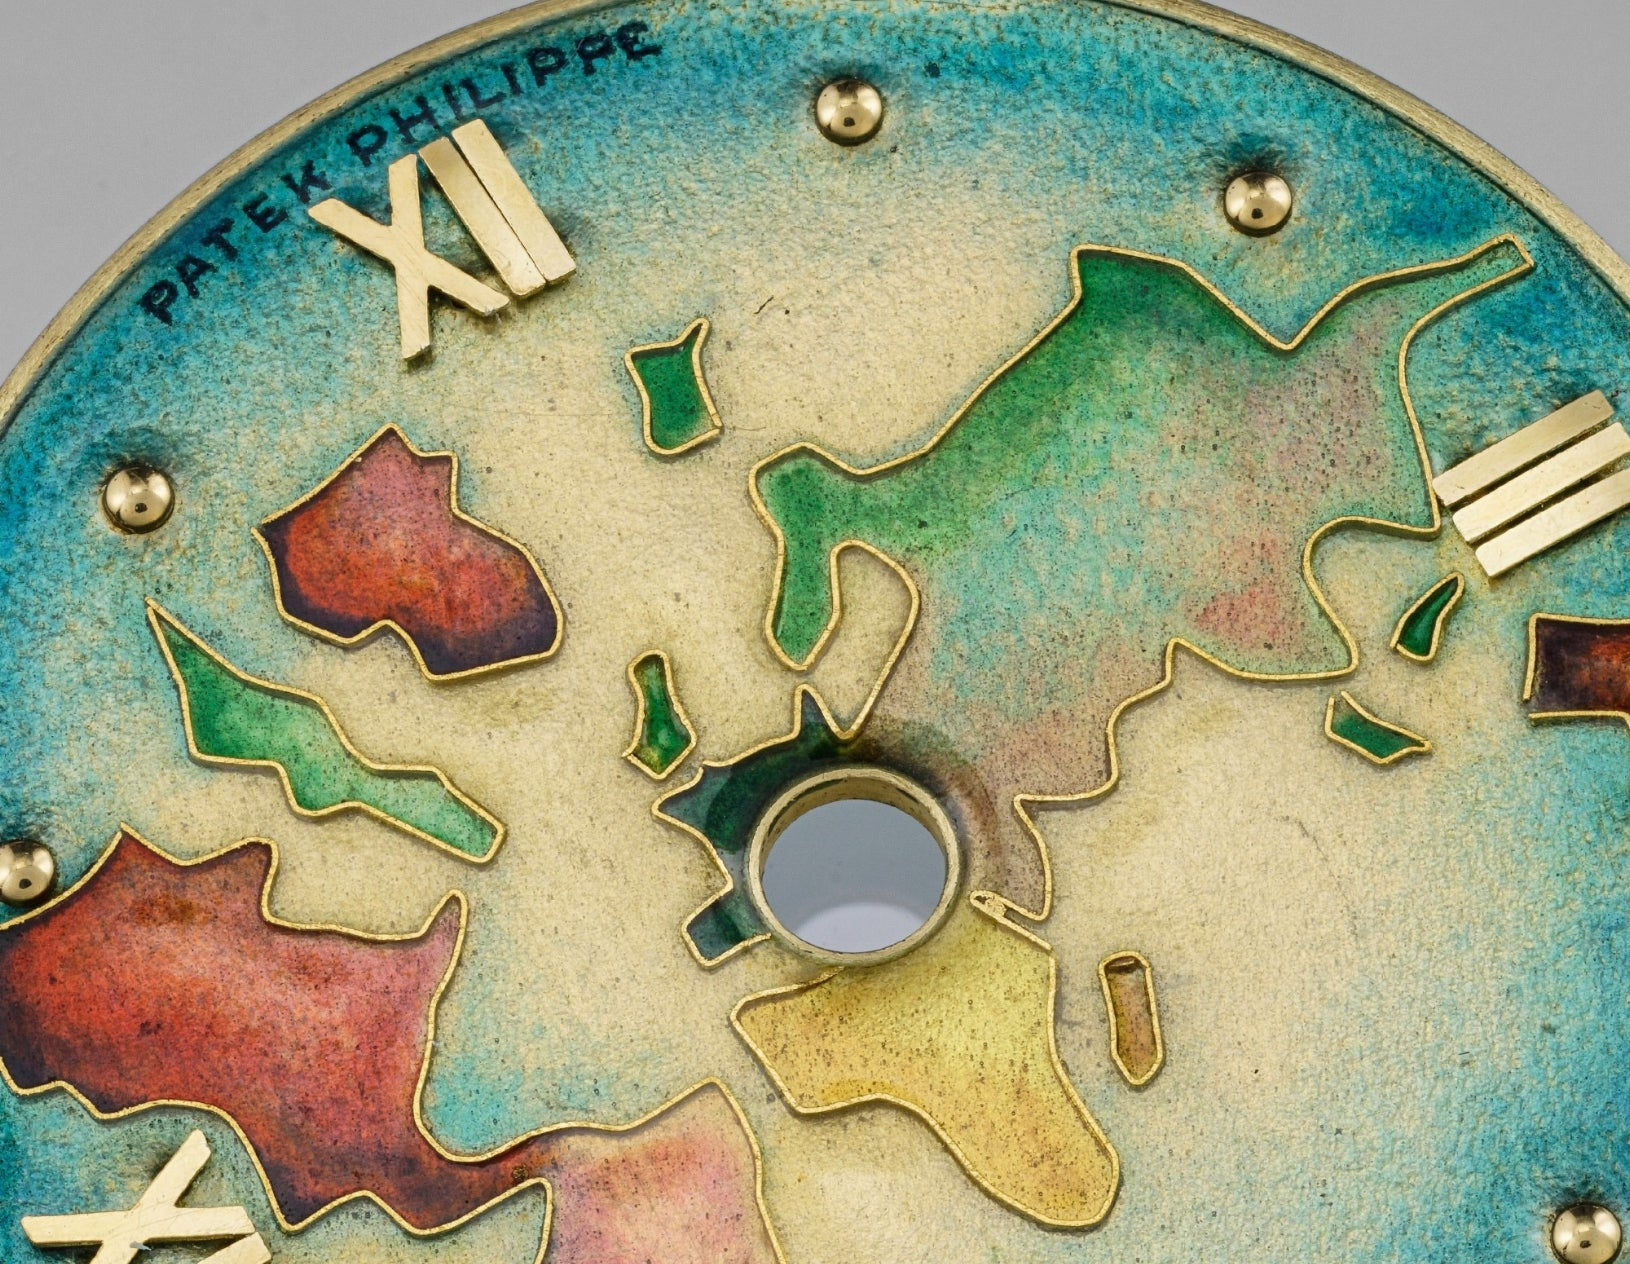 Macro on Patek Philippe Cloisonne enamel dial in The Art of Enamel Dials for A Collected Man London